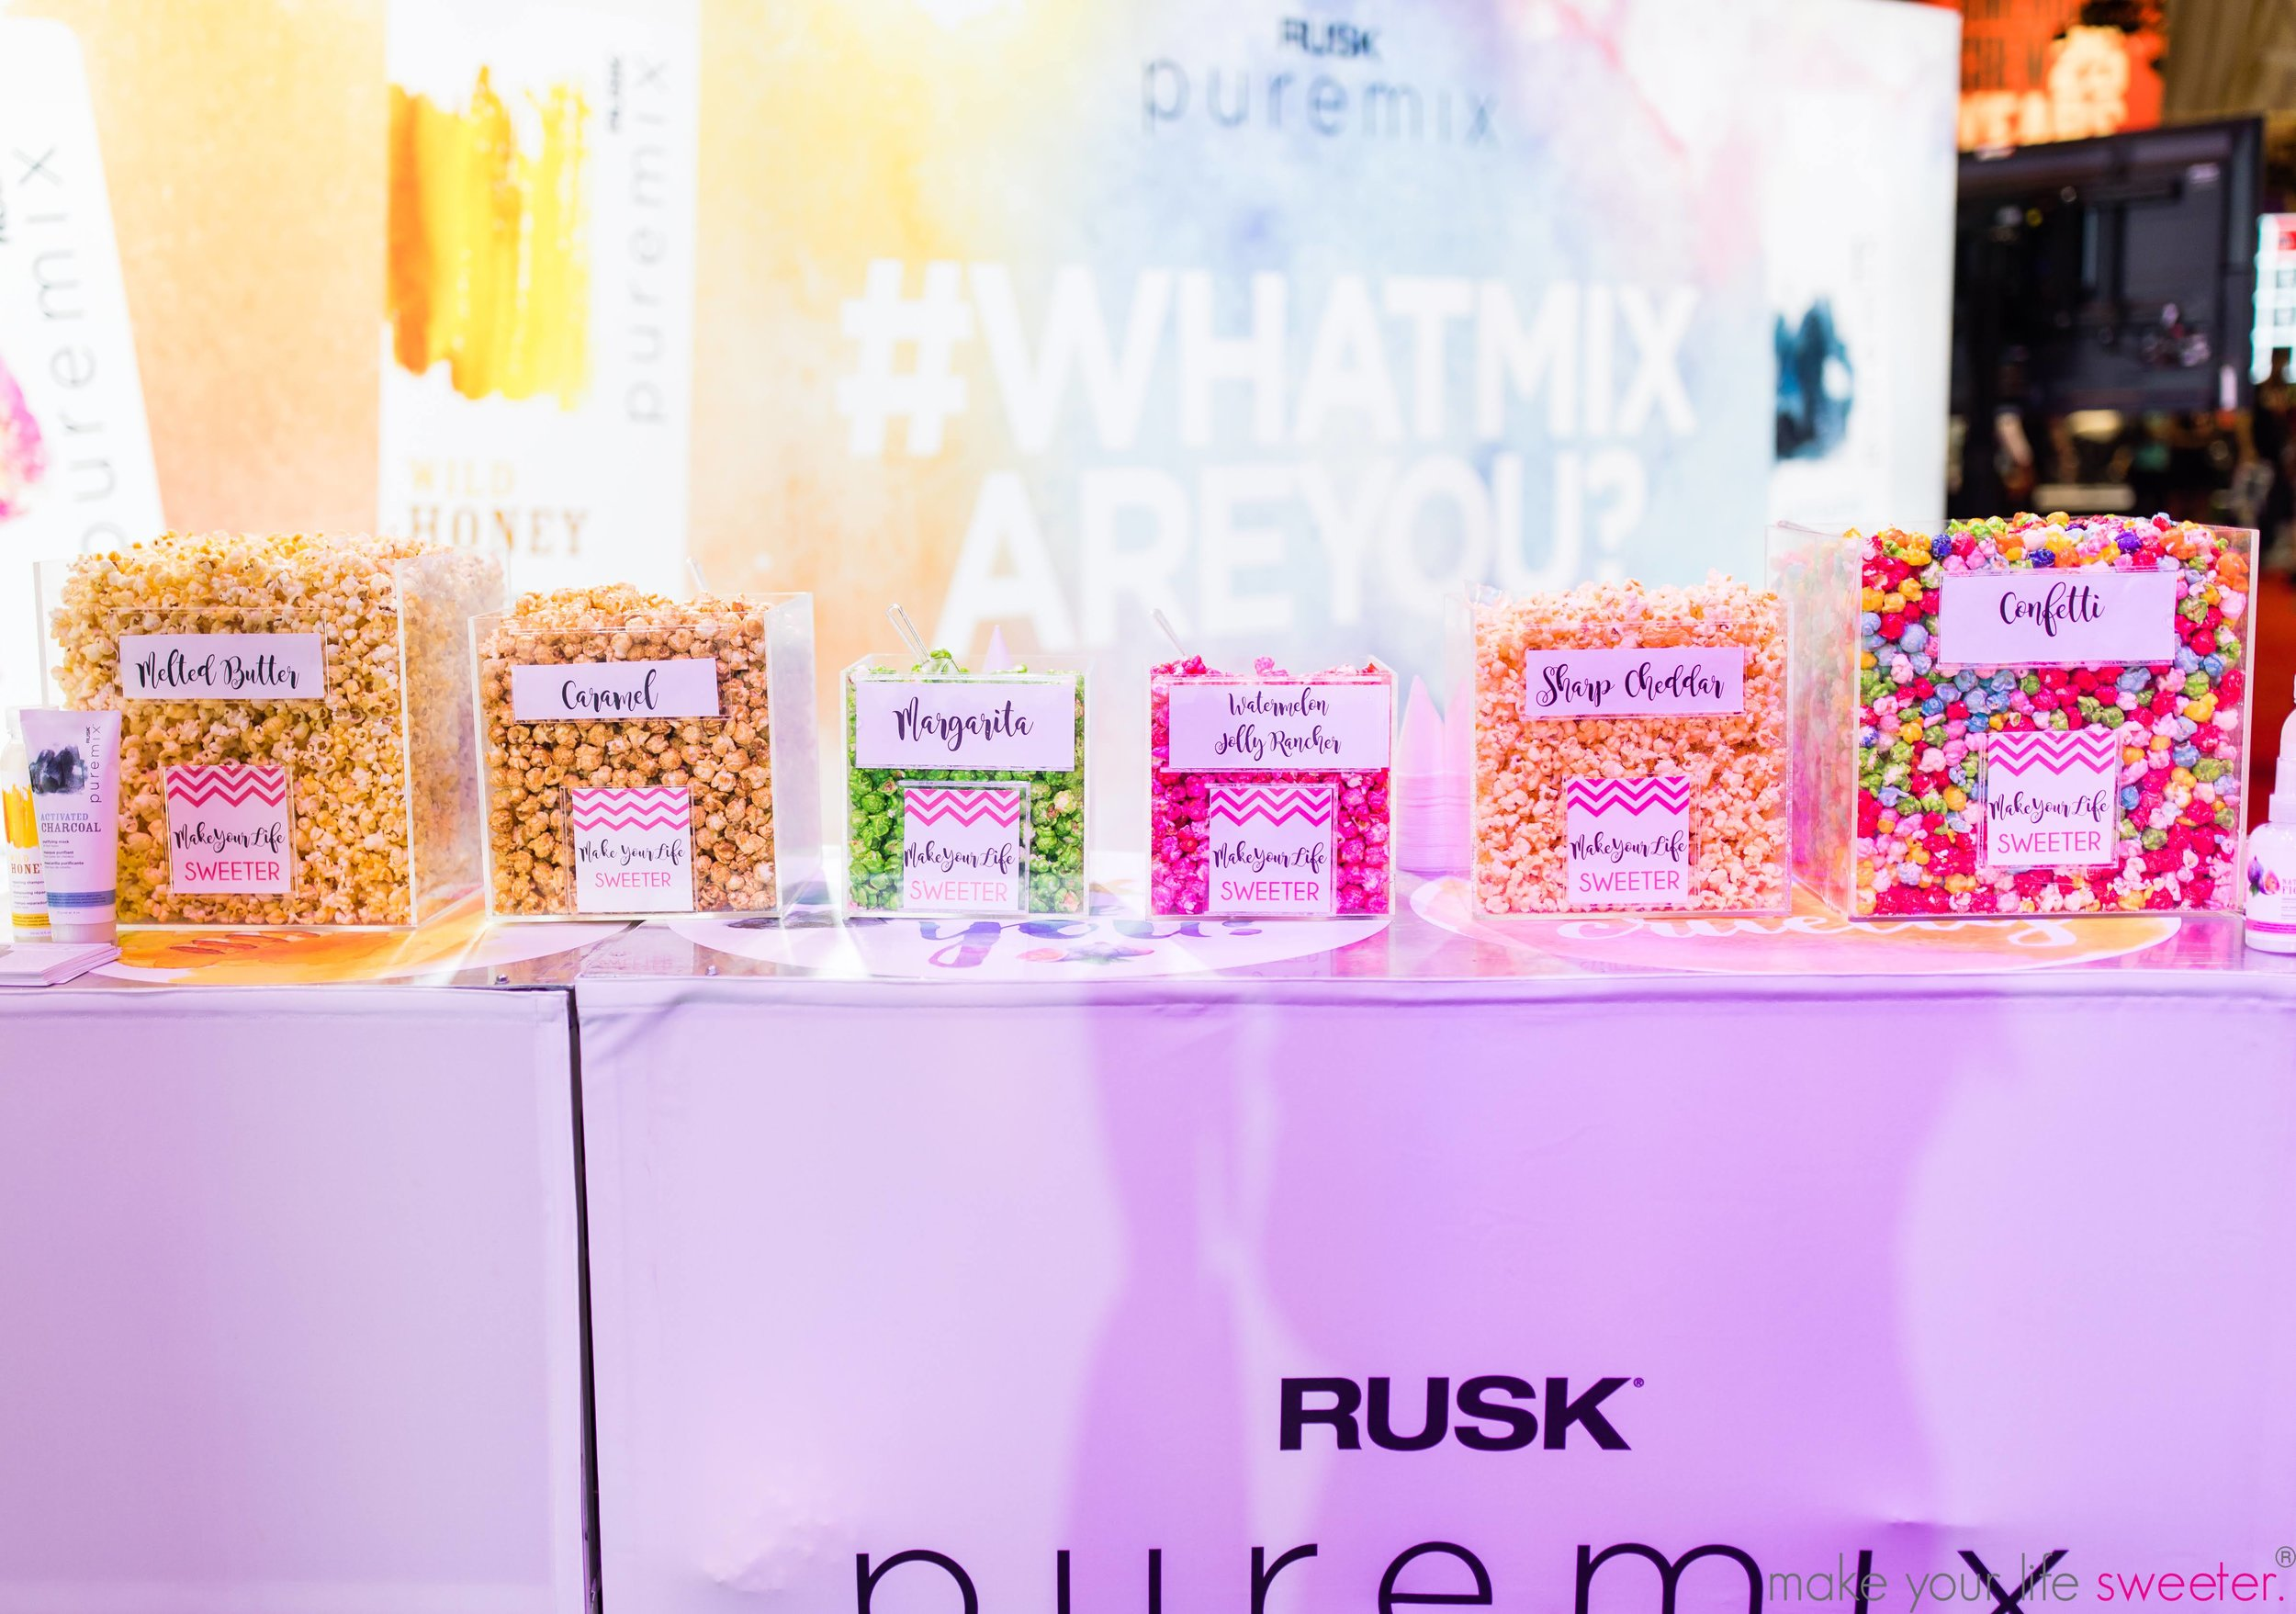 Make YourLife Sweeter Events - Conair Puremix Premier Orlando Convention - Hotpoppin Gourmet Popcorn Bar